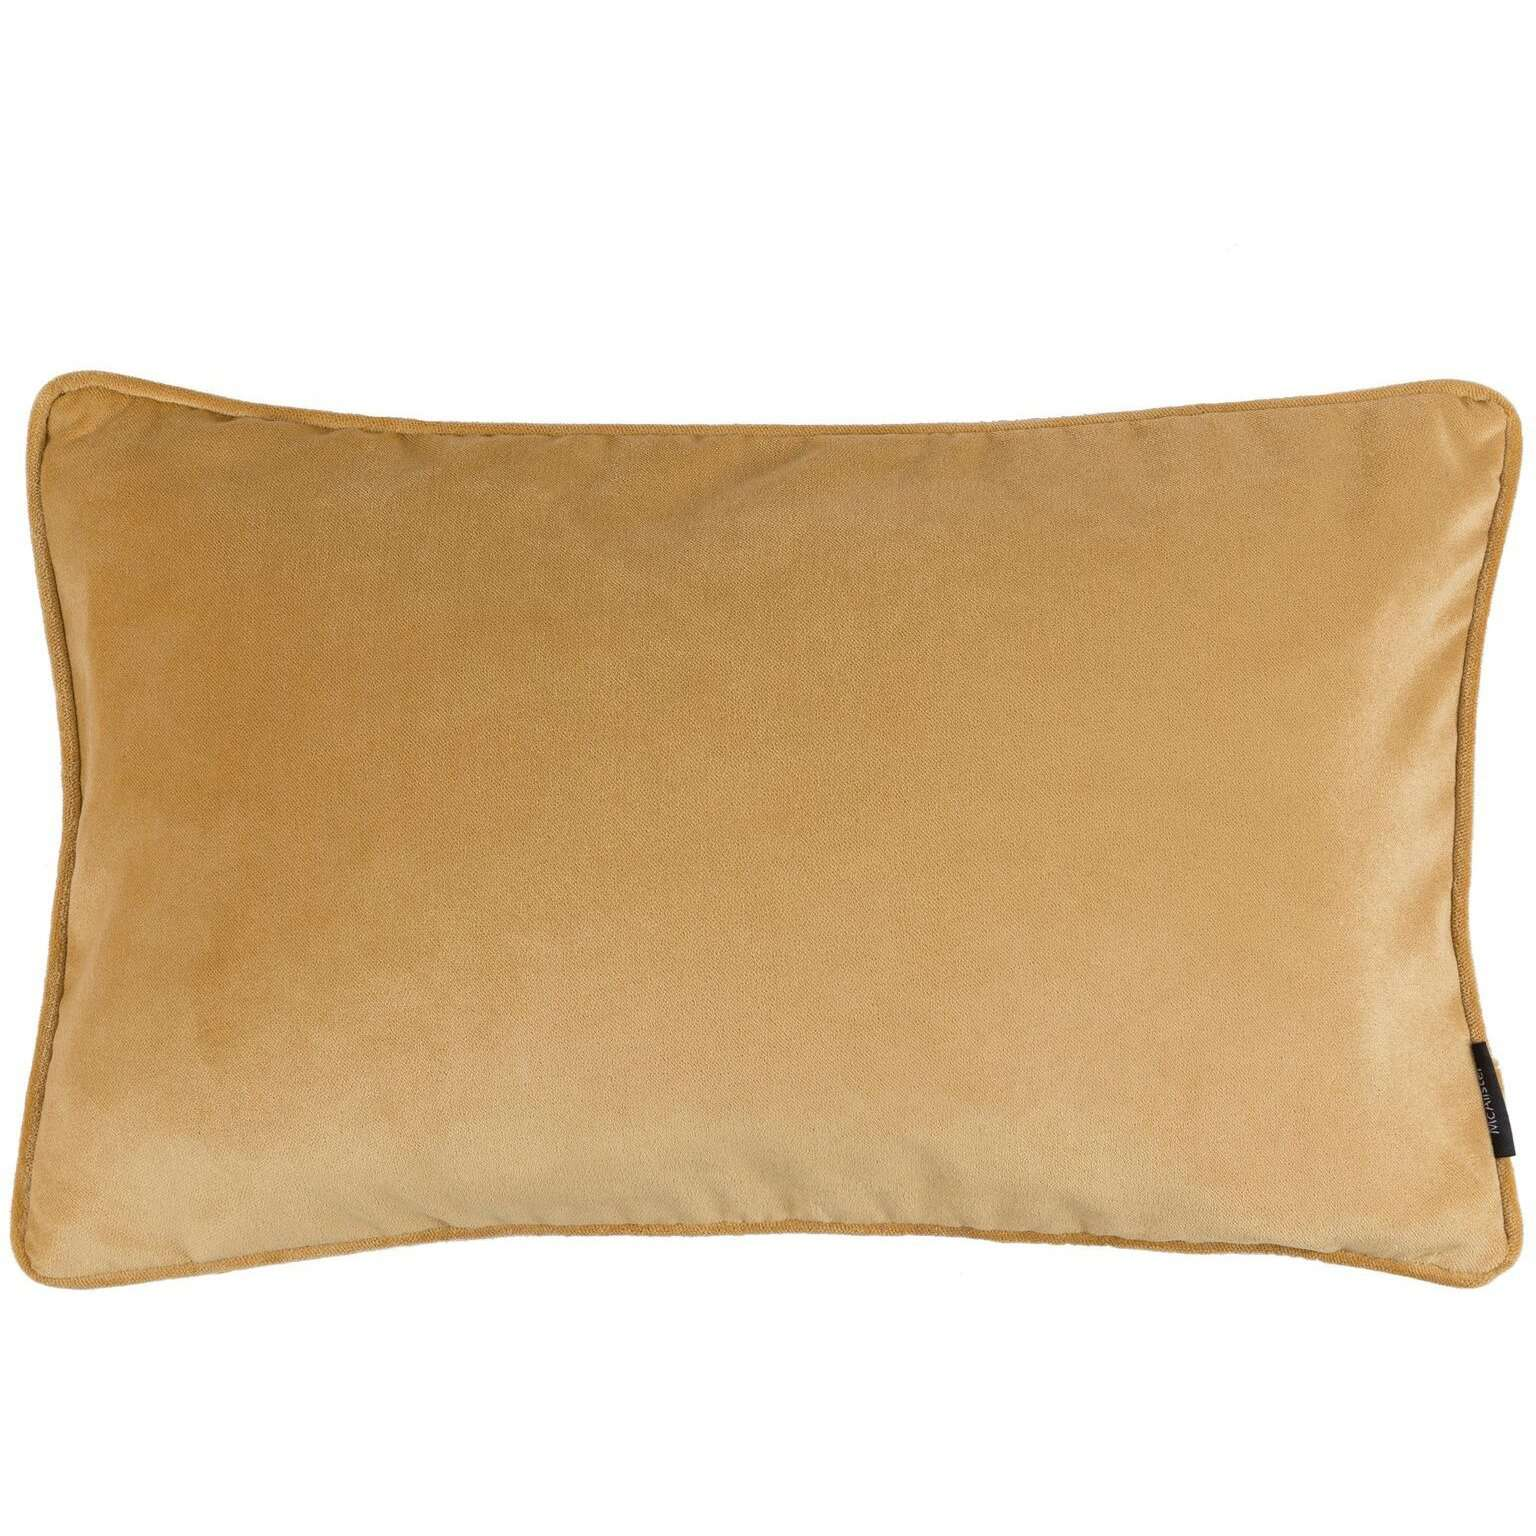 McAlister Textiles Matt Ochre Yellow Velvet Cushion Cushions and Covers Cover Only 50cm x 30cm